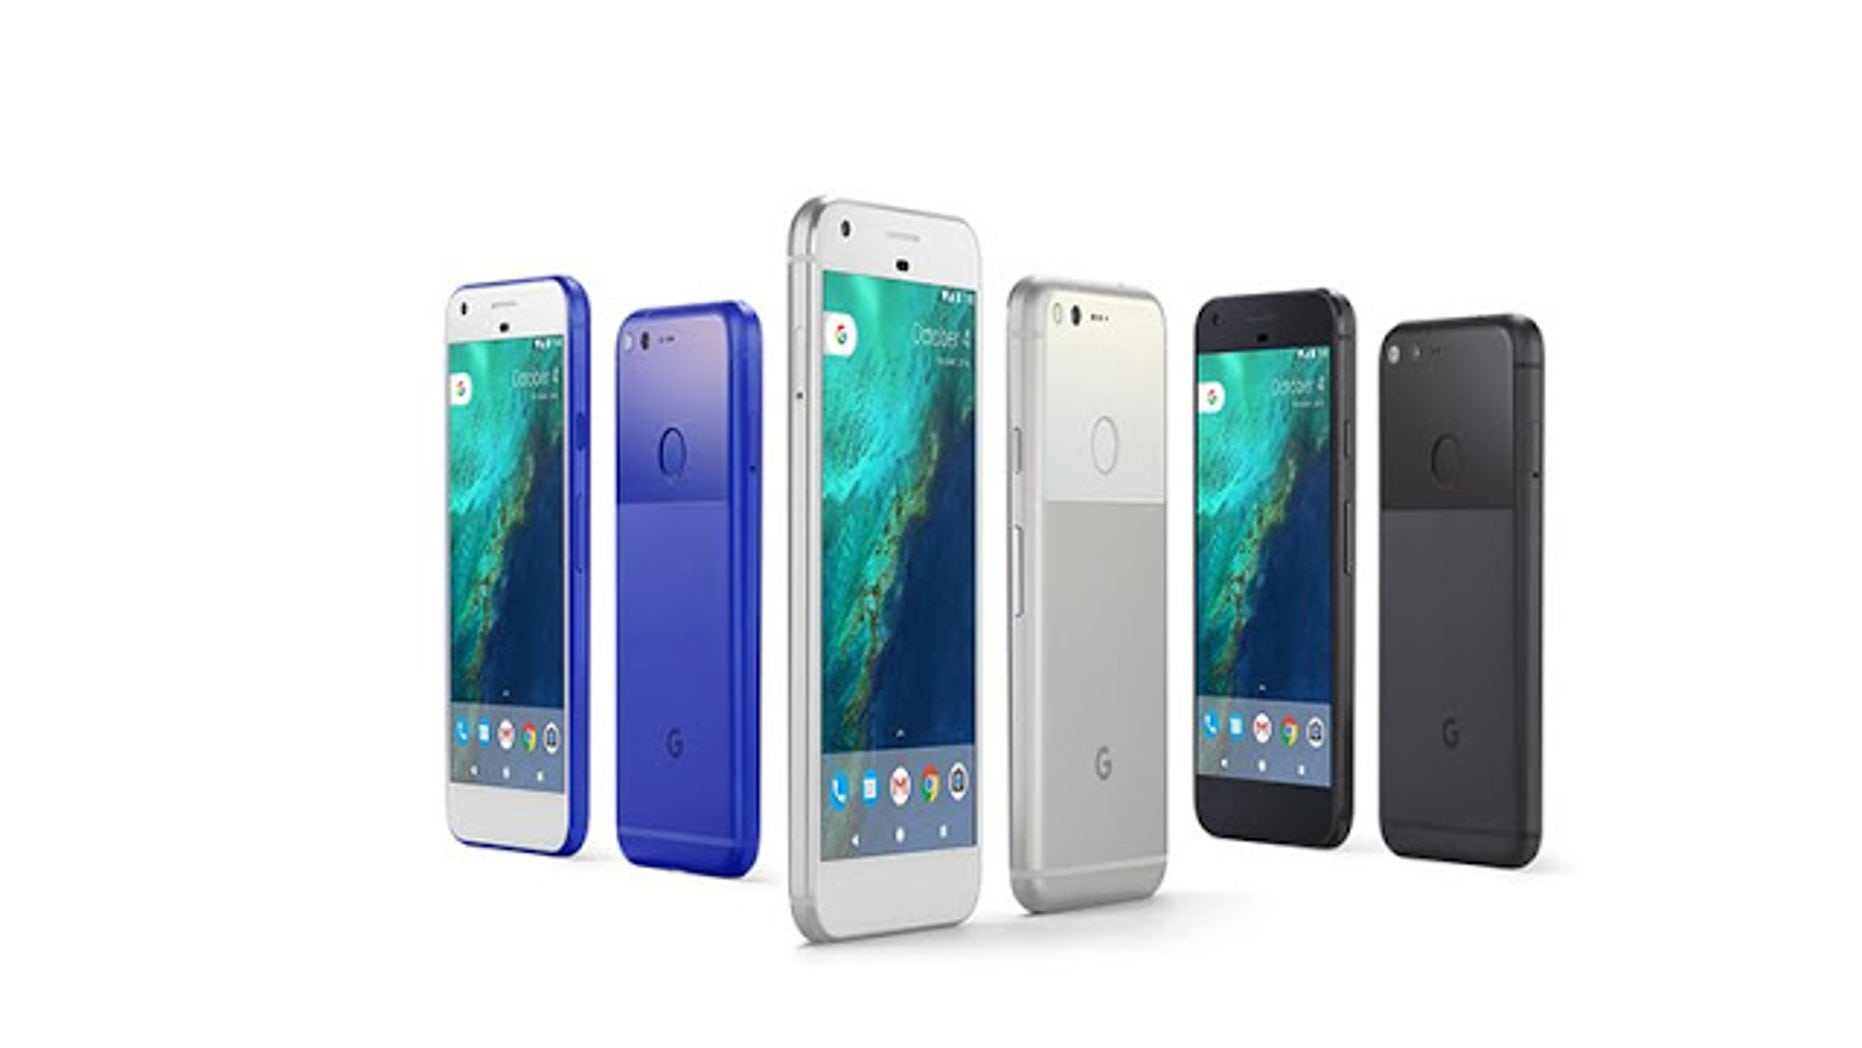 ee7915380149 The reviews are in: Google's Pixel phone takes on the iPhone 7 | Fox ...